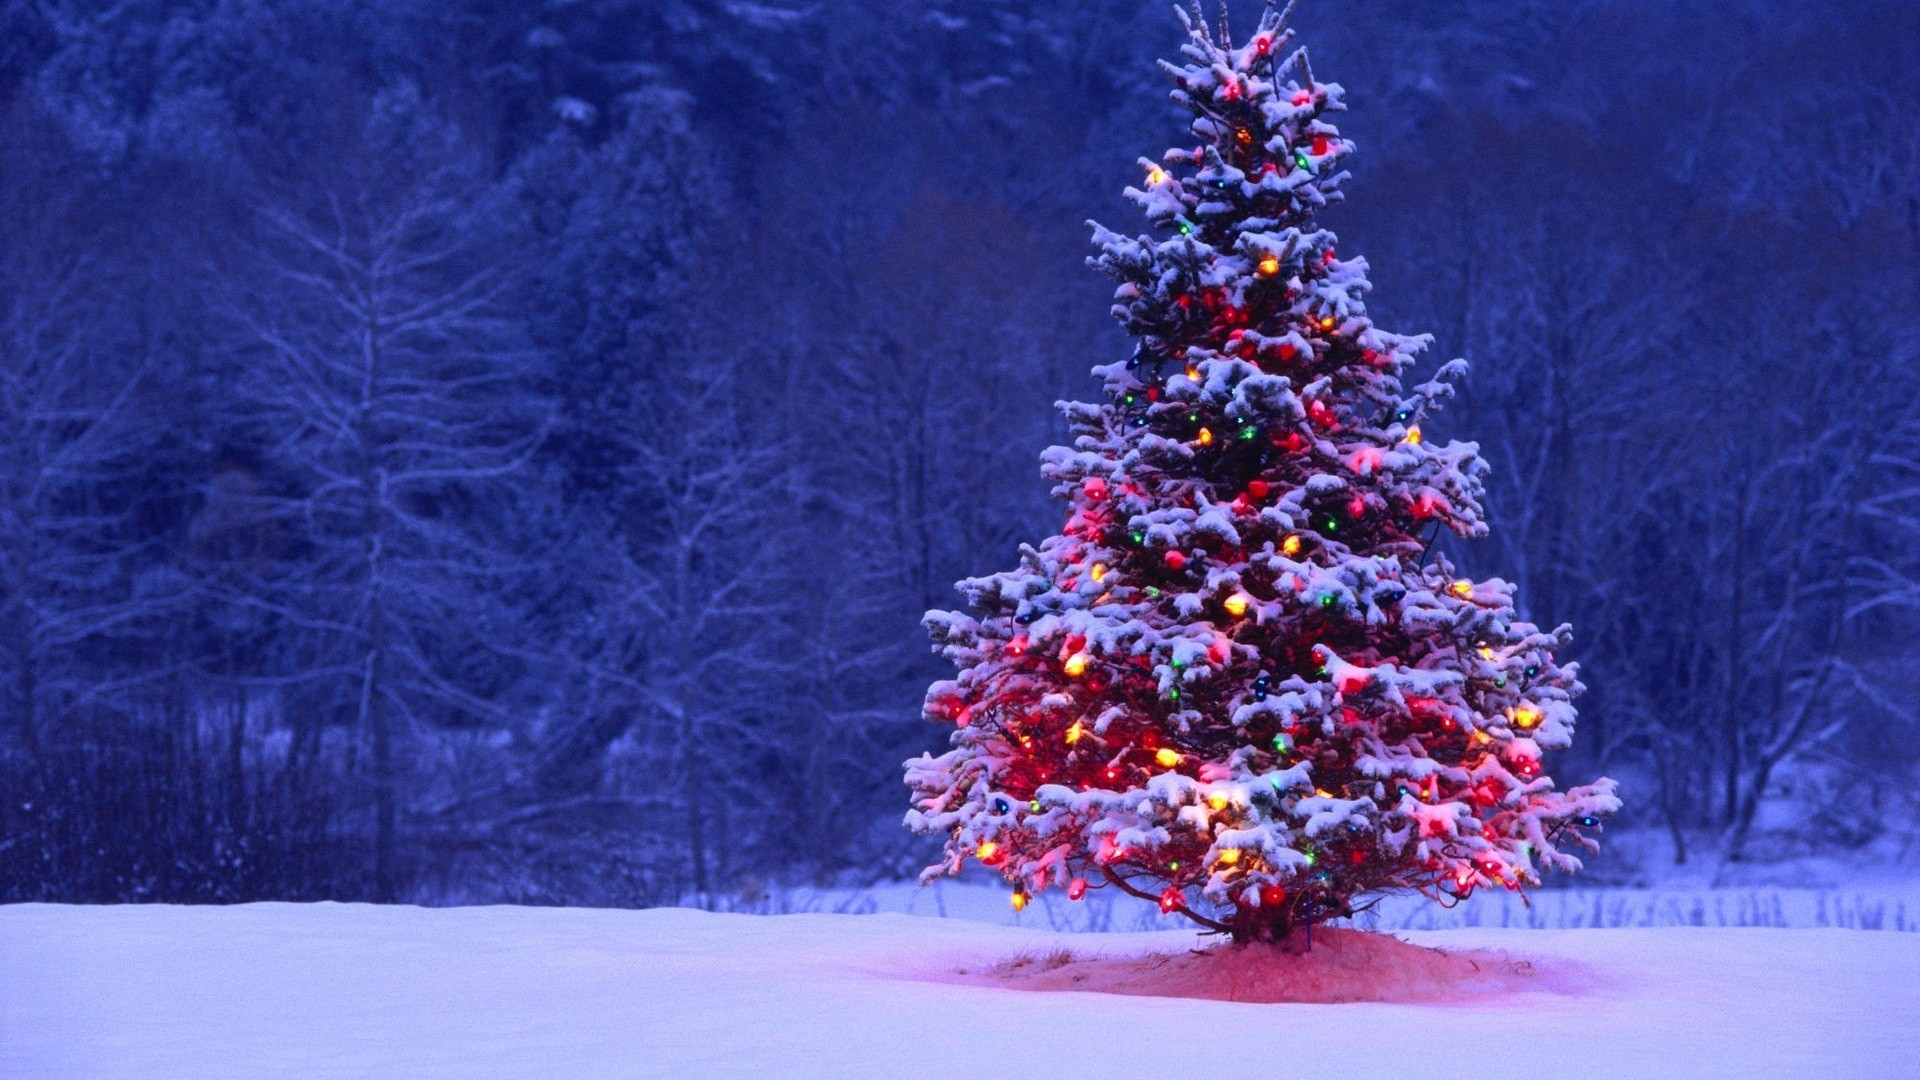 Christmas Hd Wallpaper Download Free Wallpapers And Backgrounds